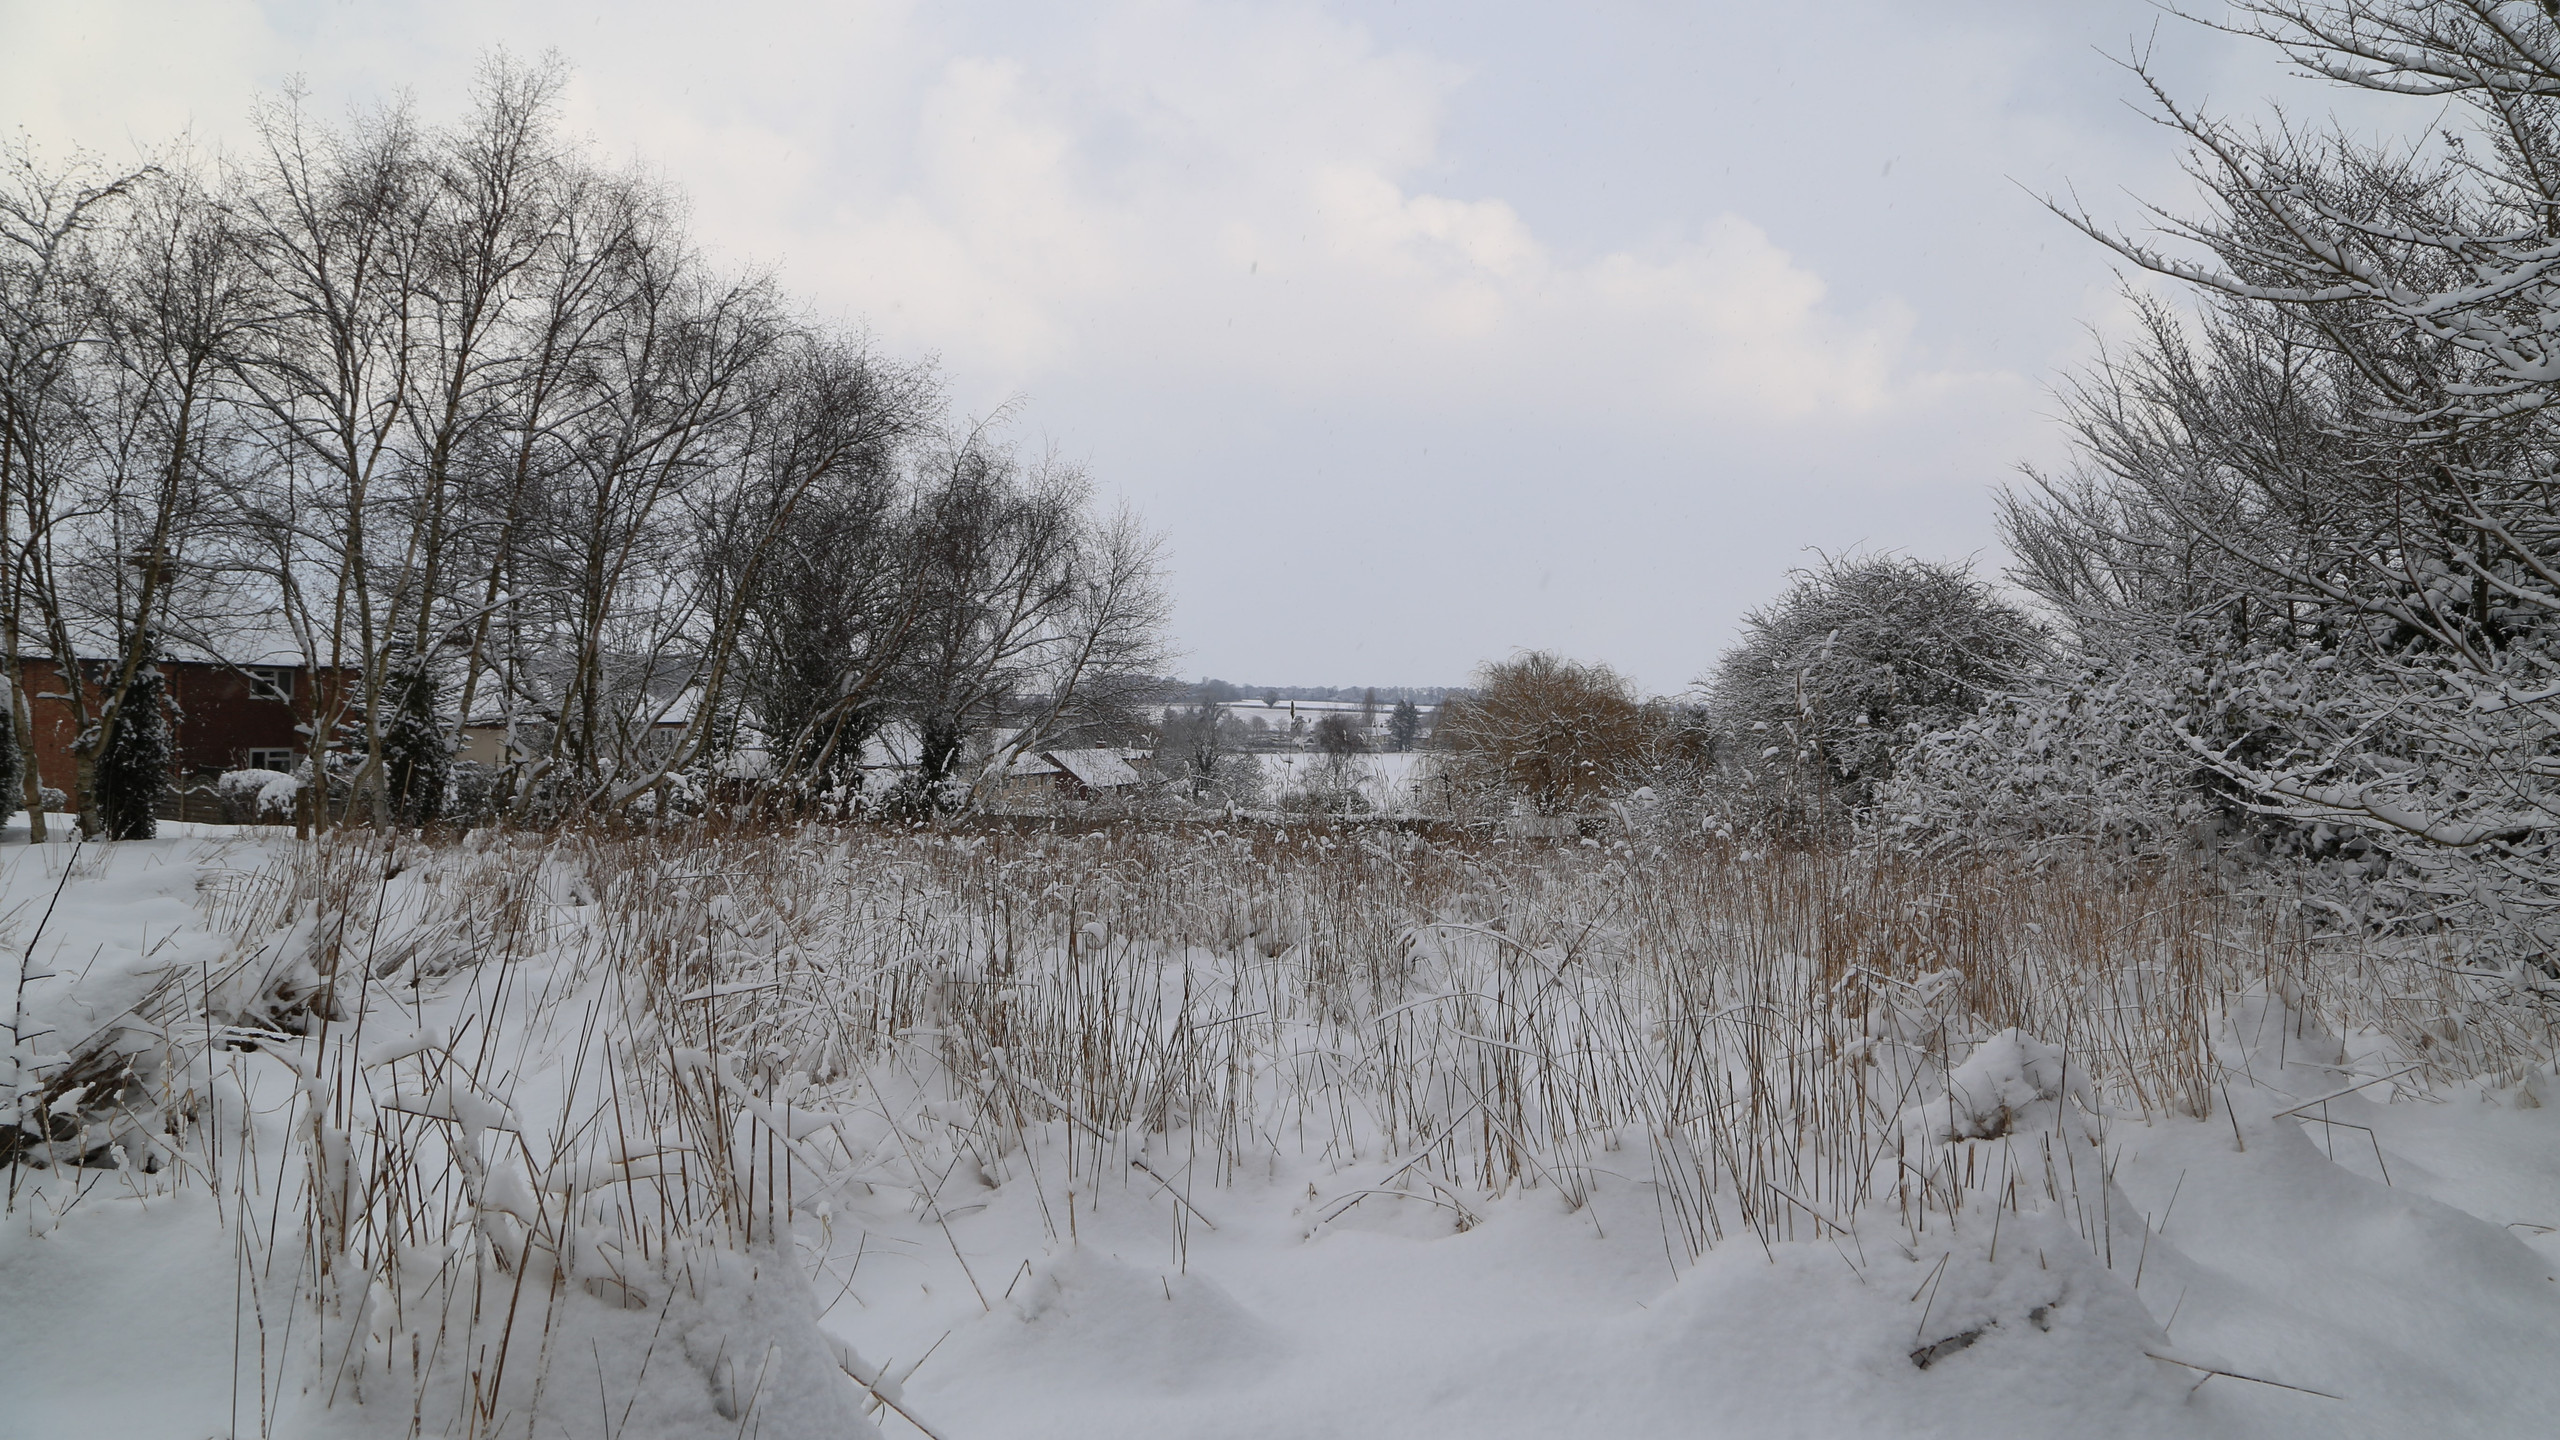 Looking towards the meadows